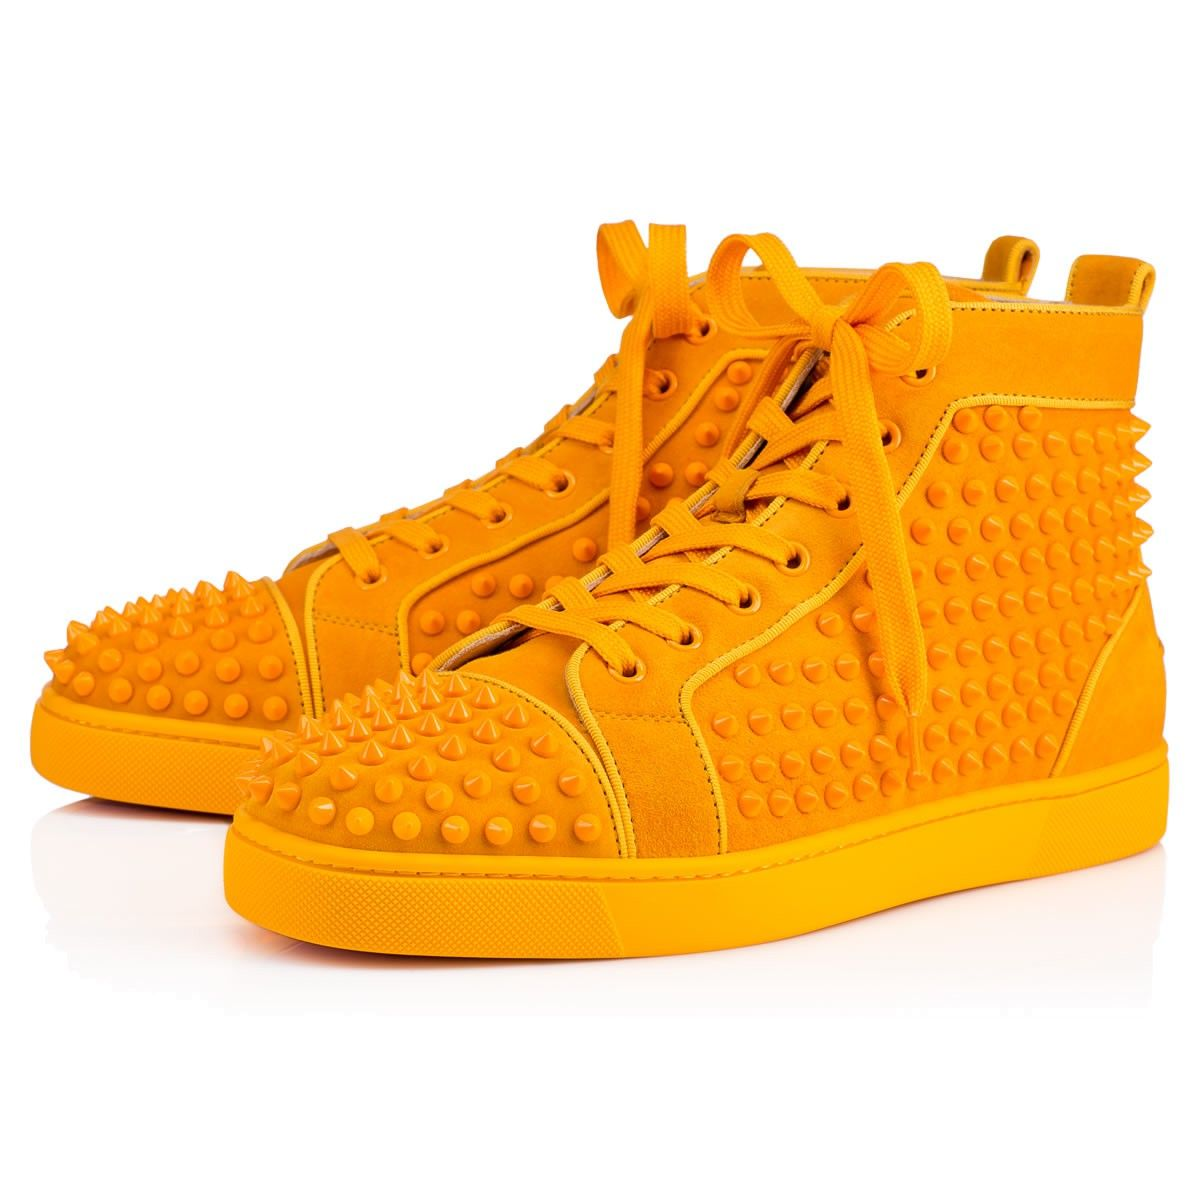 christian louboutin yellow spikes